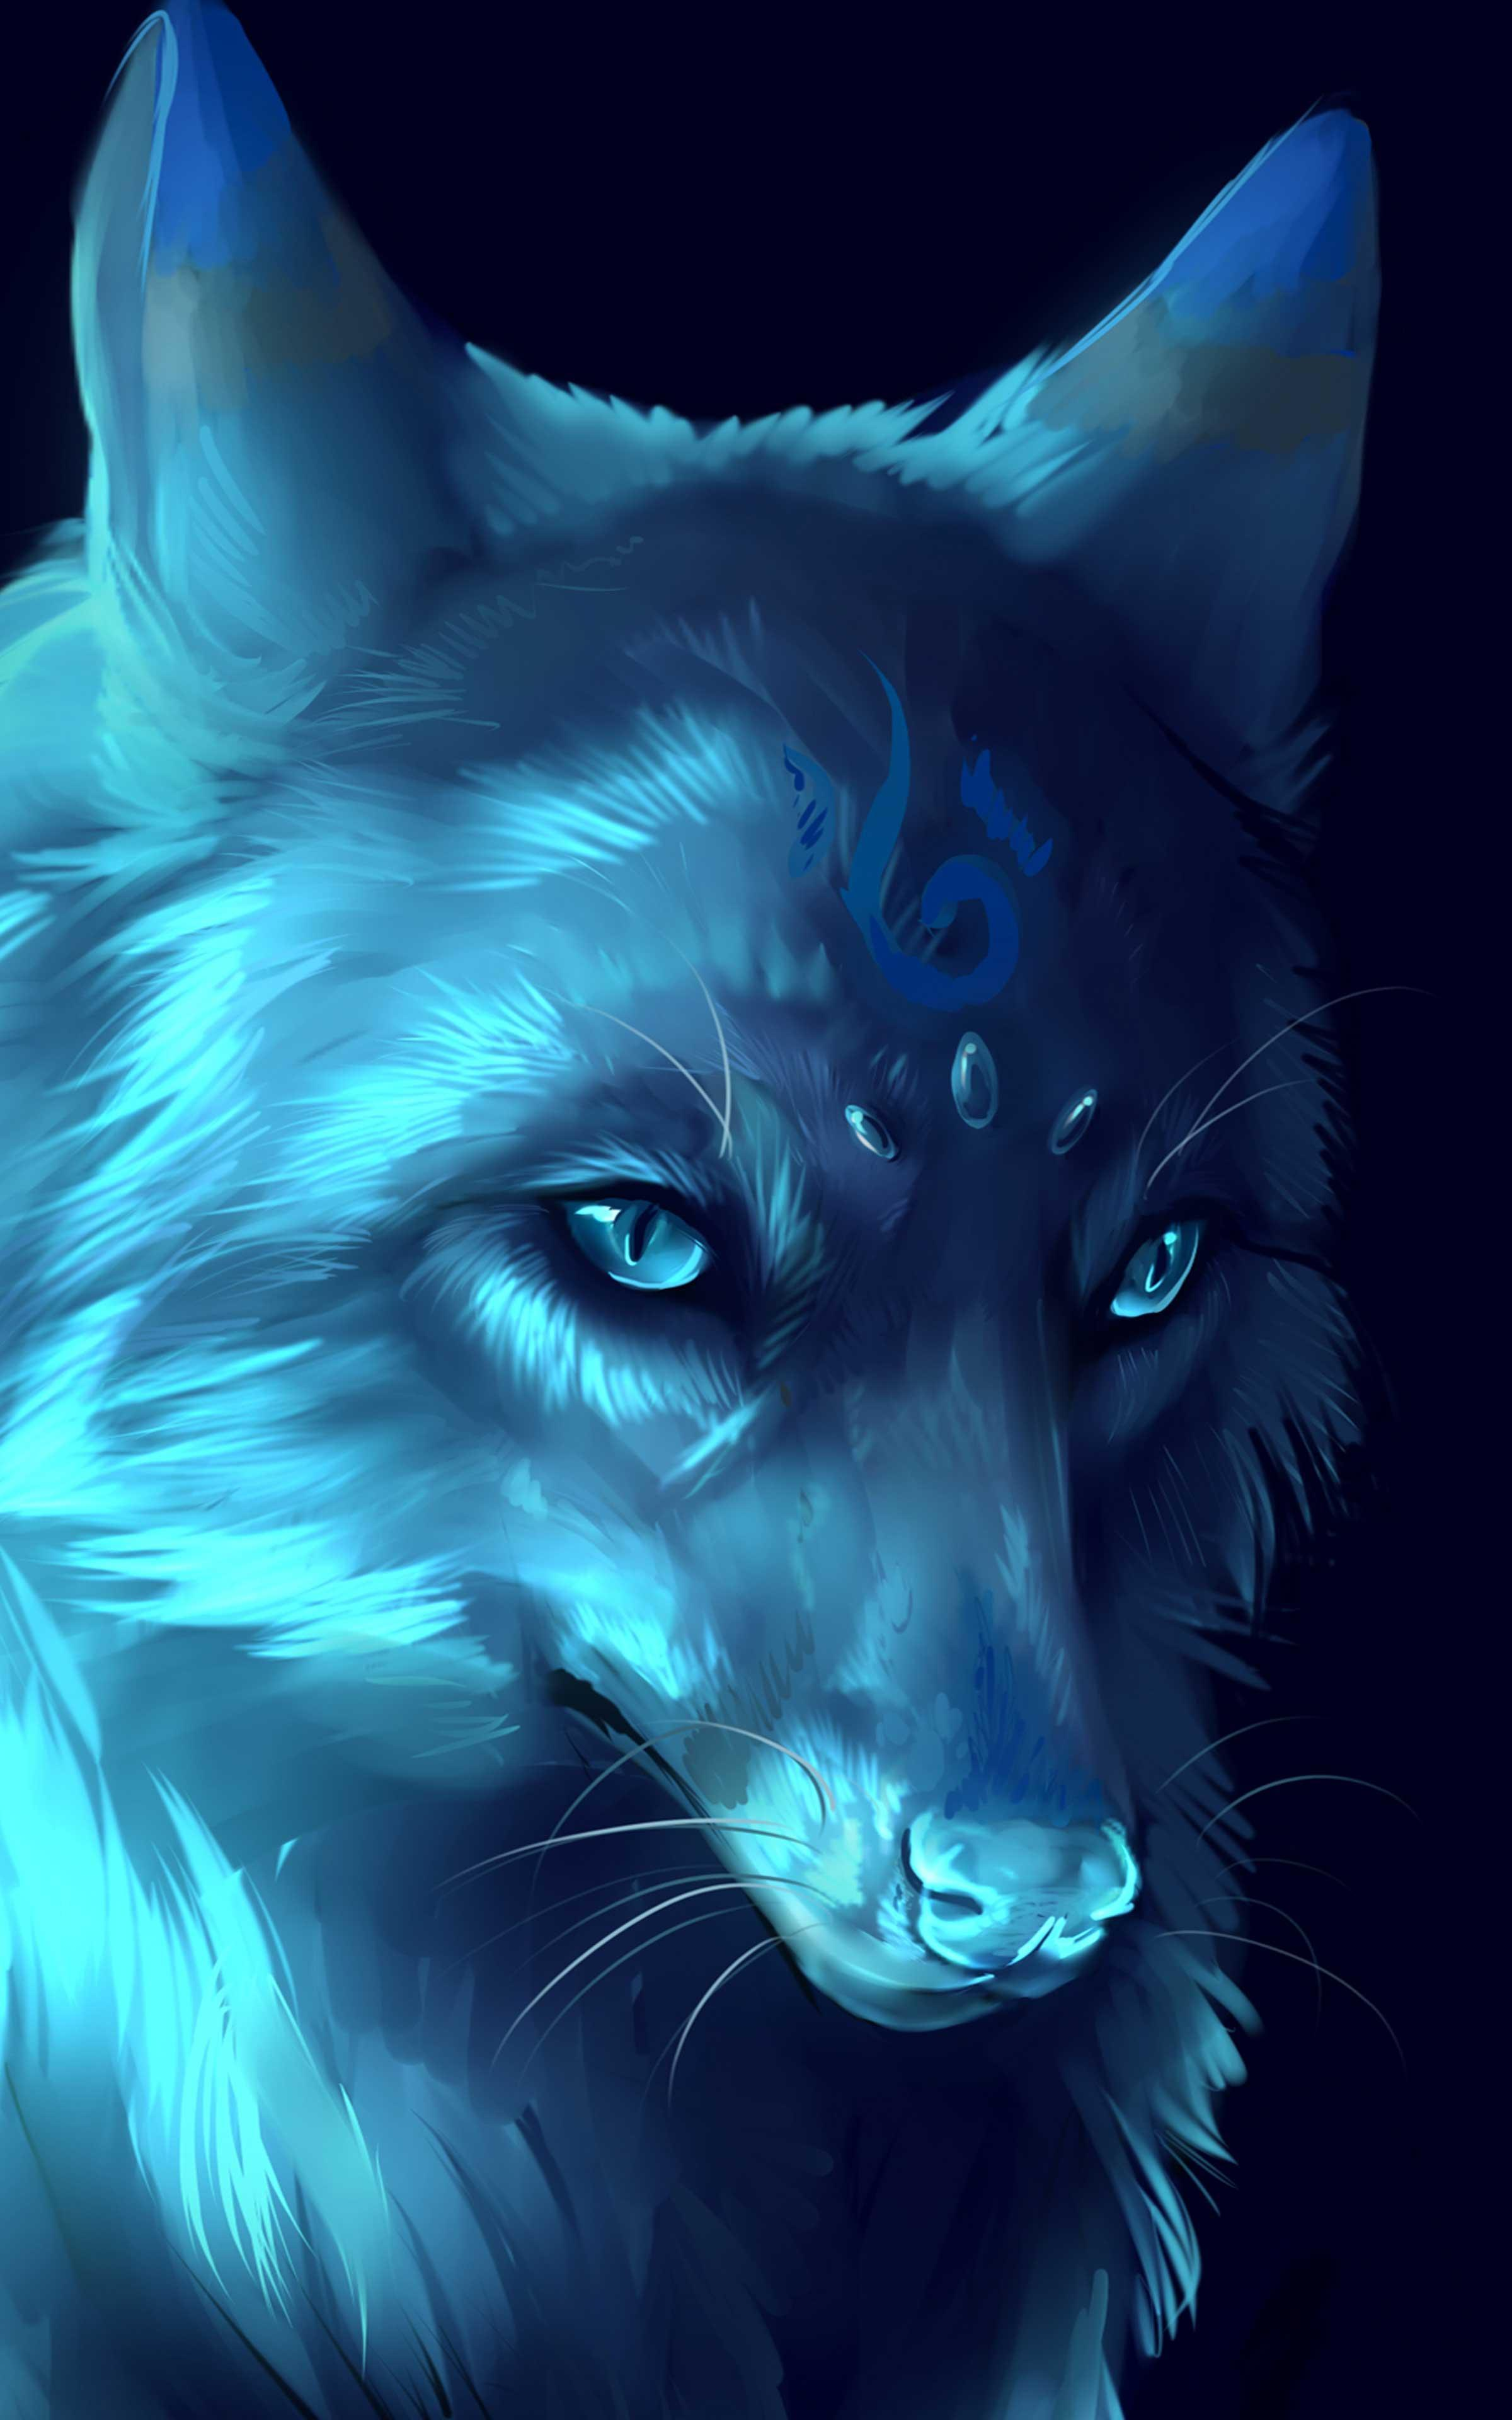 Wolf Wallpaper - Best Cool Wolf Wallpapers para Android - APK Descargar